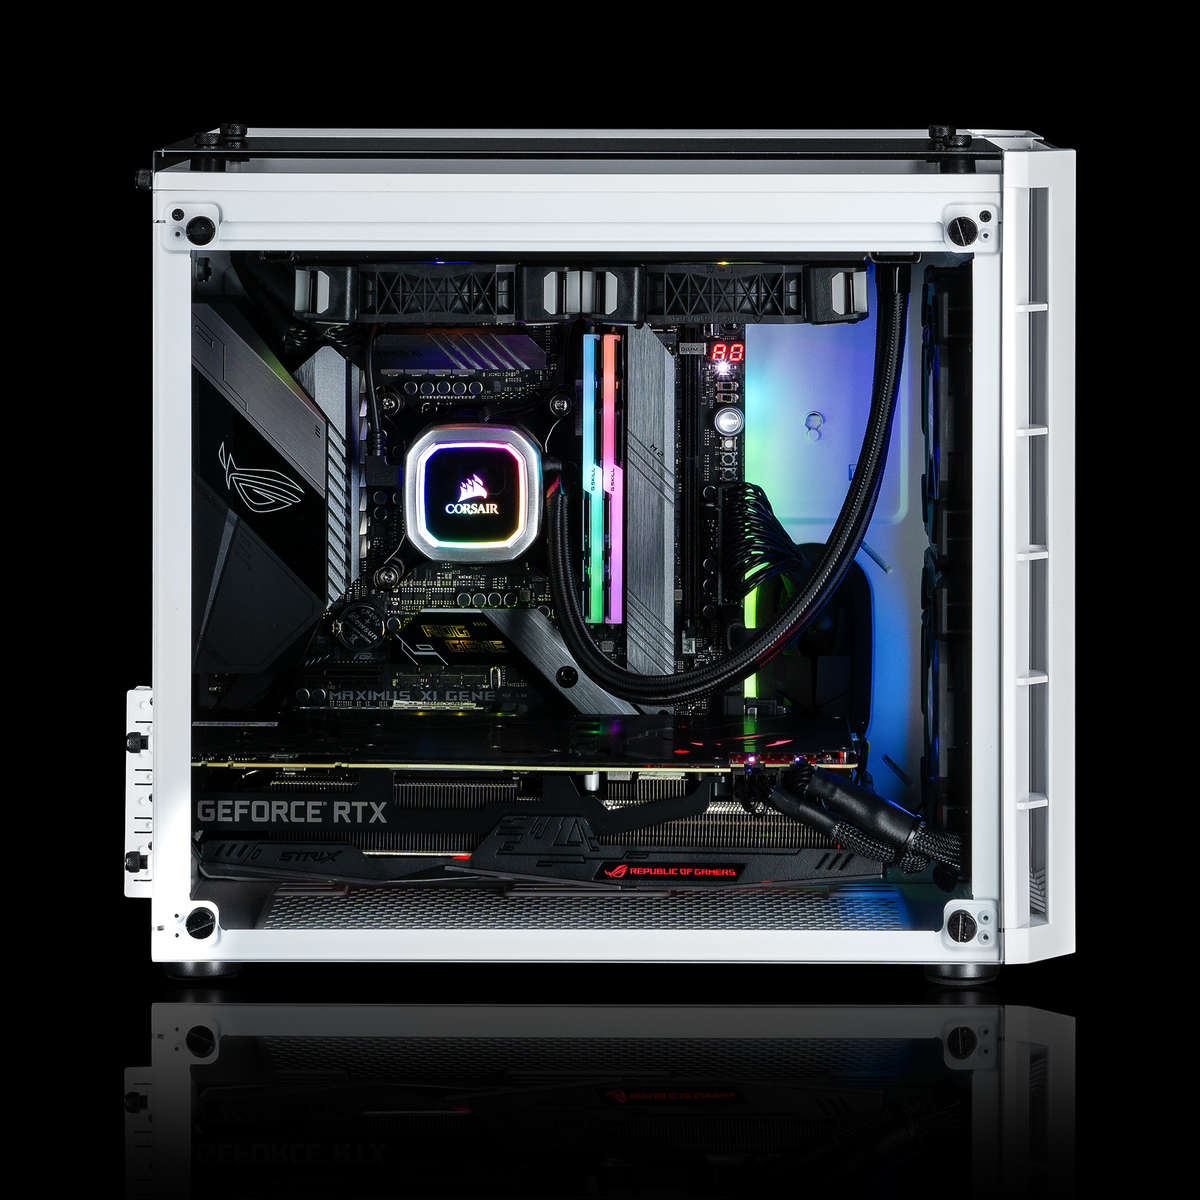 PRE-ORDER - Chillblast Fusion Crystal Gaming PC